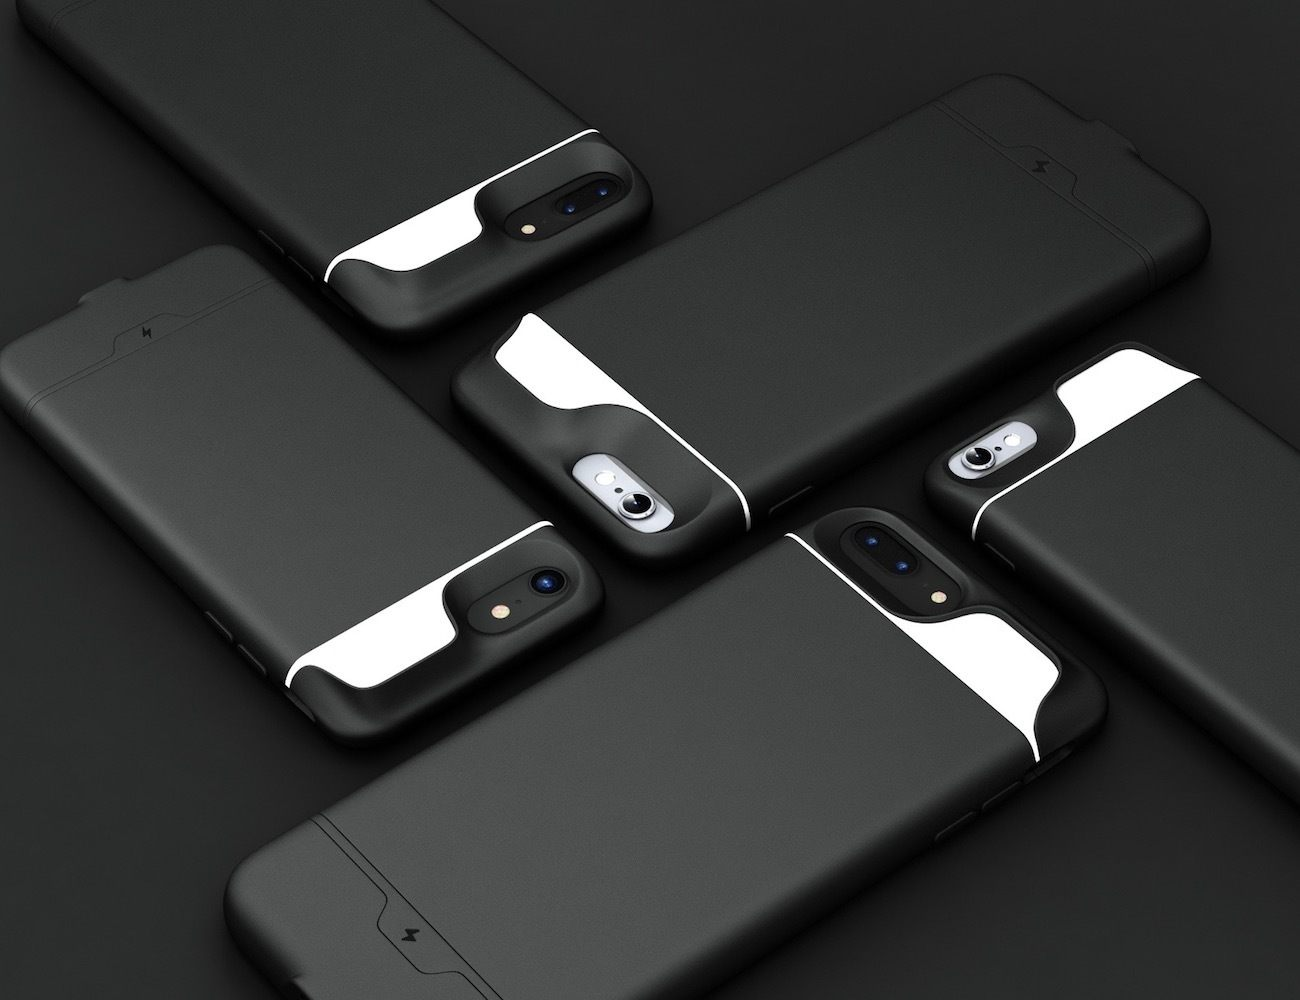 iblazr Case for Your iPhone